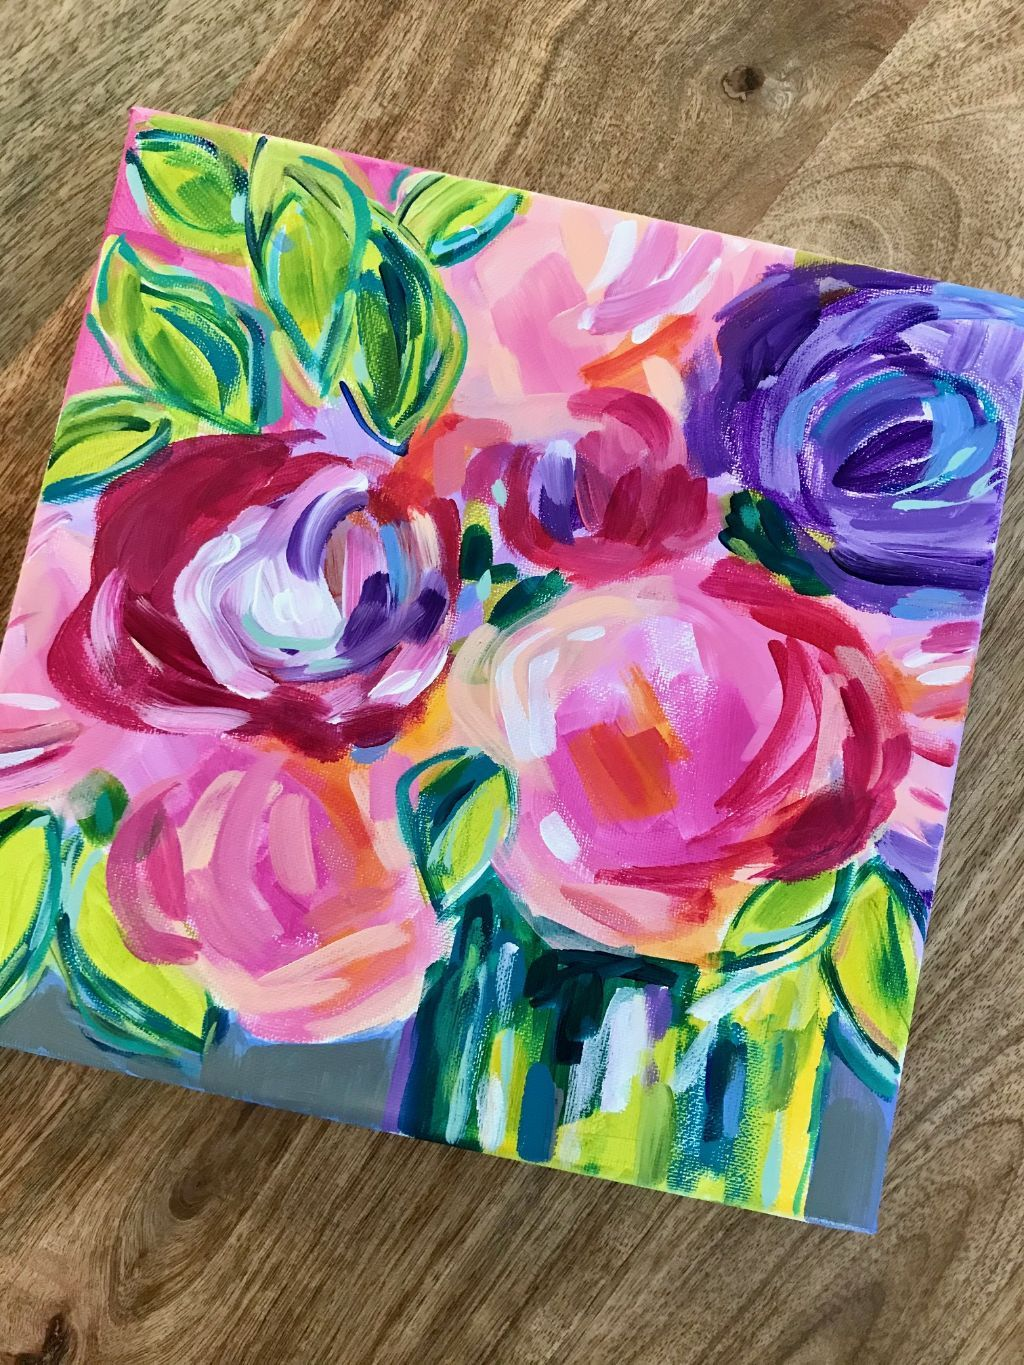 How To Paint Easy Abstract Flowers Youtube And Skillshare Painting